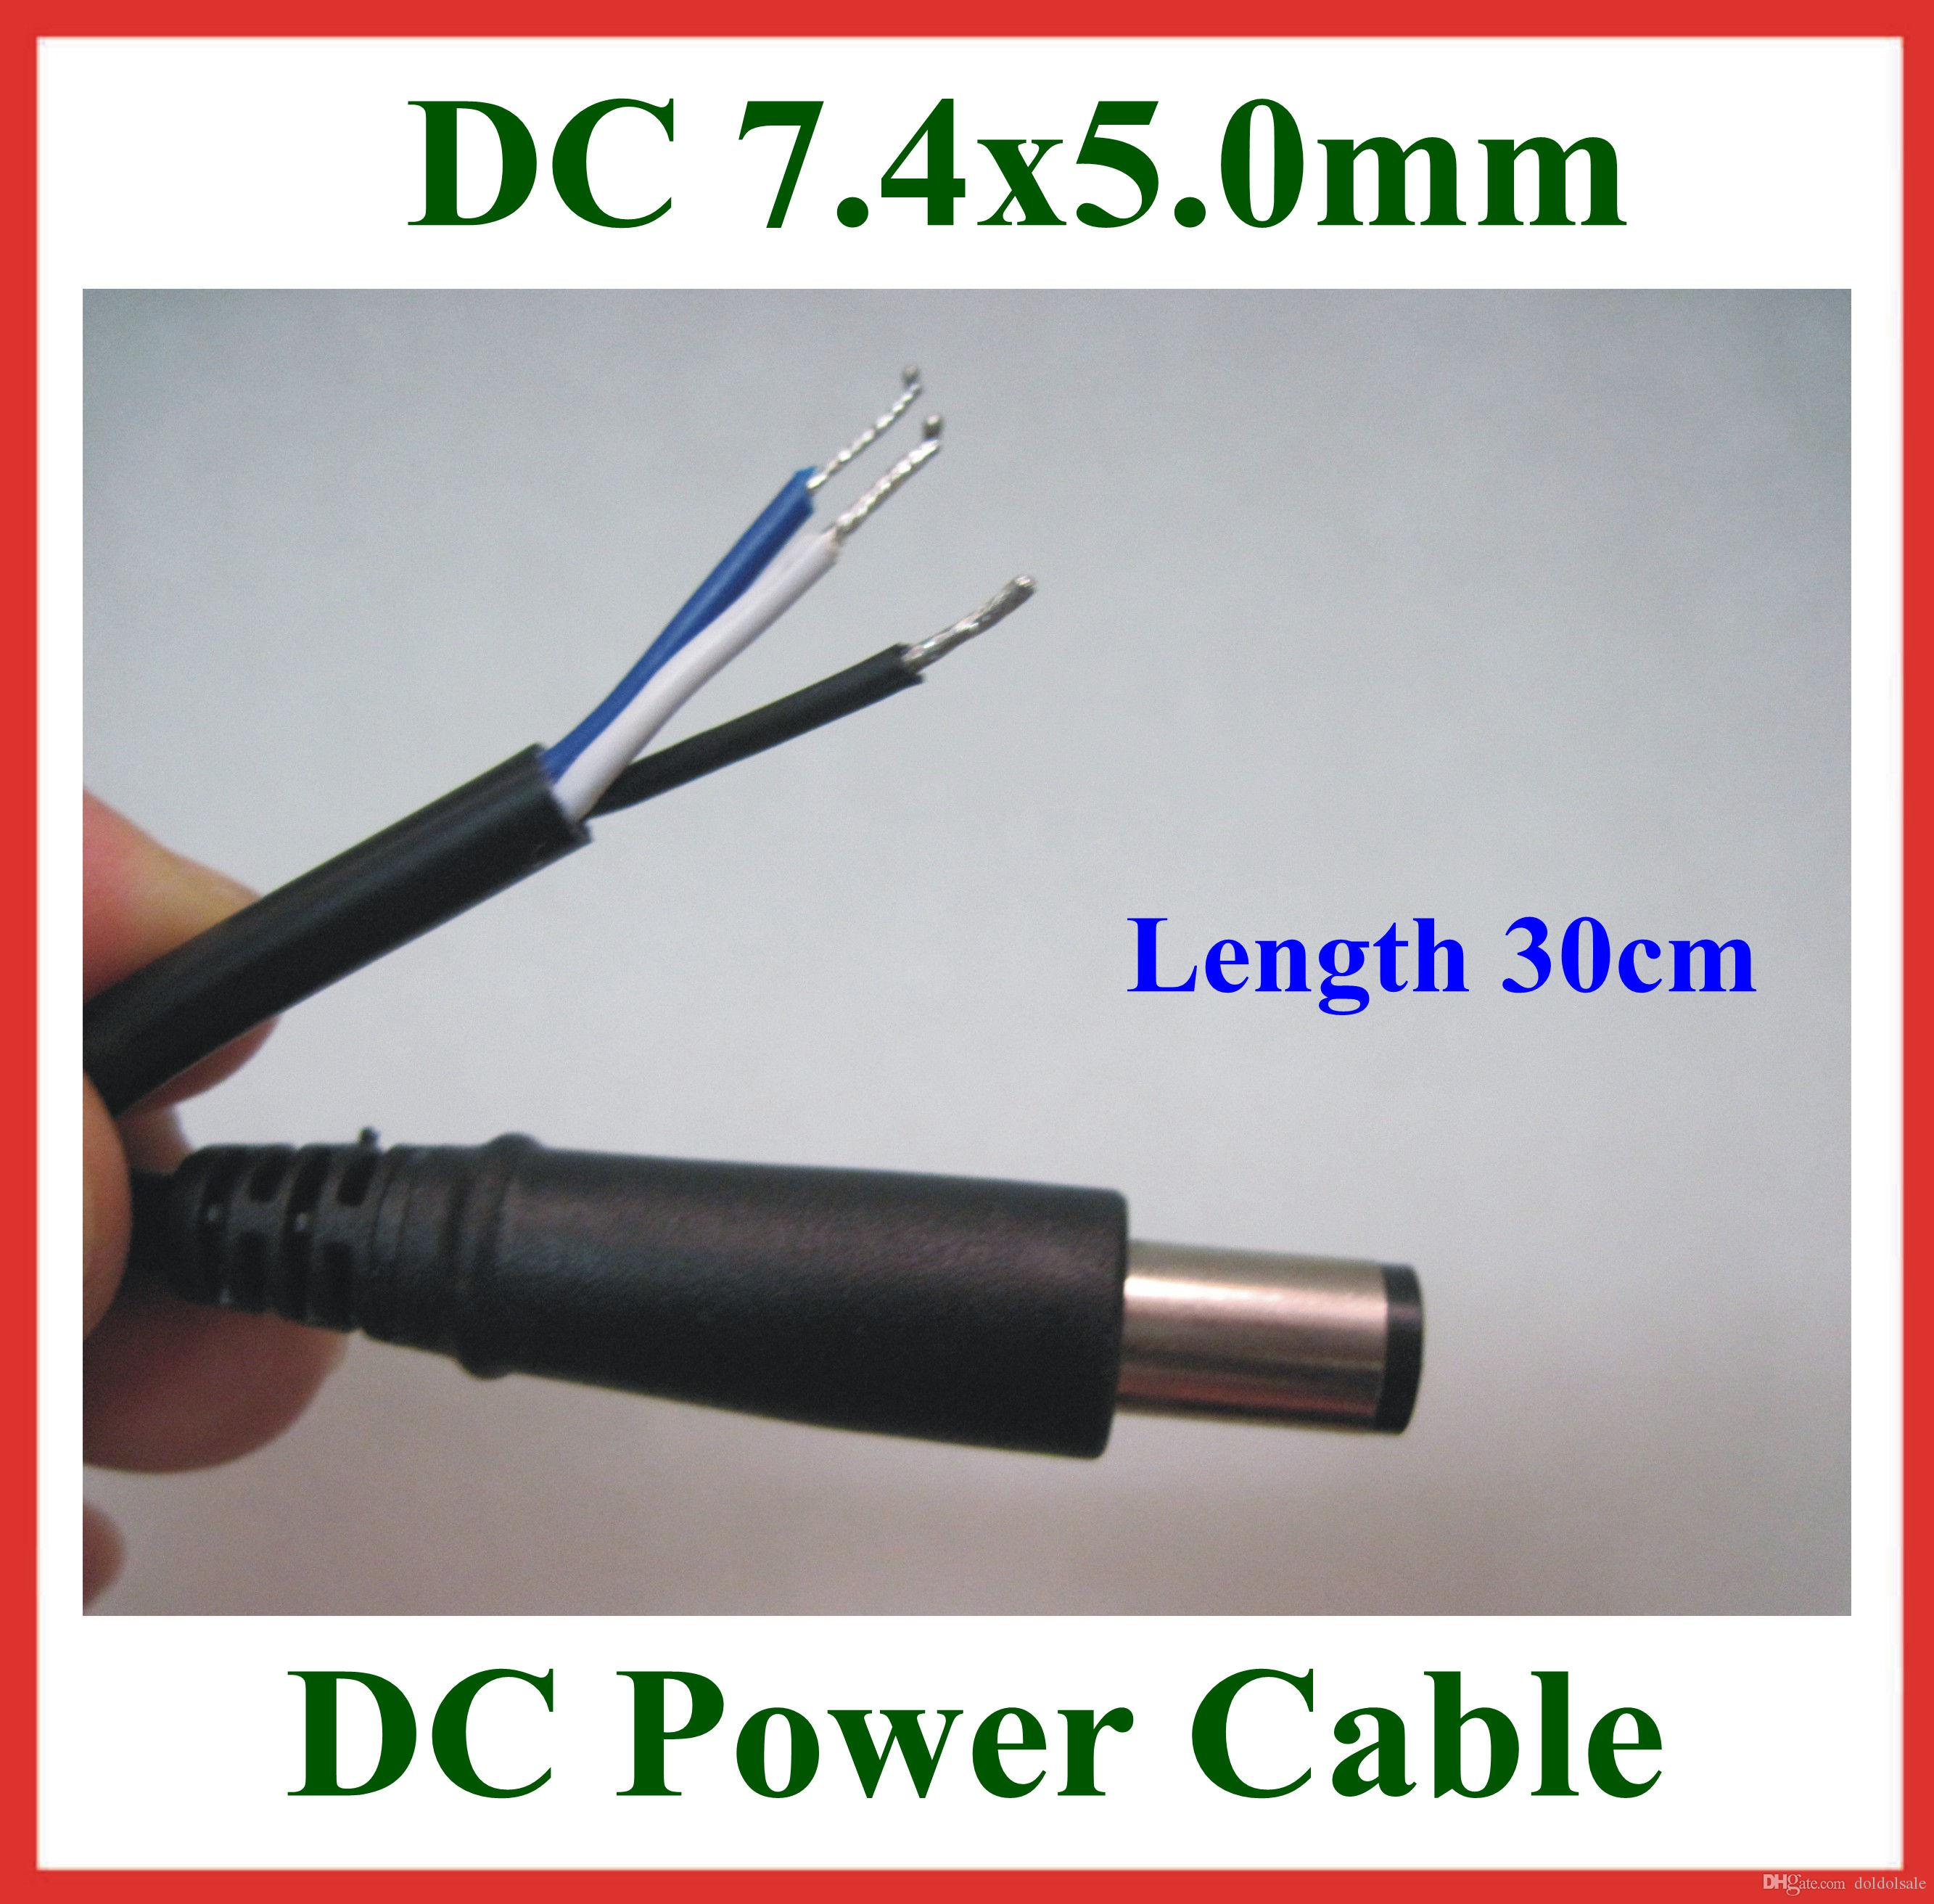 2pcs dc tip plug 7 4 5 0mm 7 4x5 0mm dc power 2018 dc tip plug 7 4*5 0mm 7 4x5 0mm dc power supply cable with dell laptop charger wiring diagram at bakdesigns.co